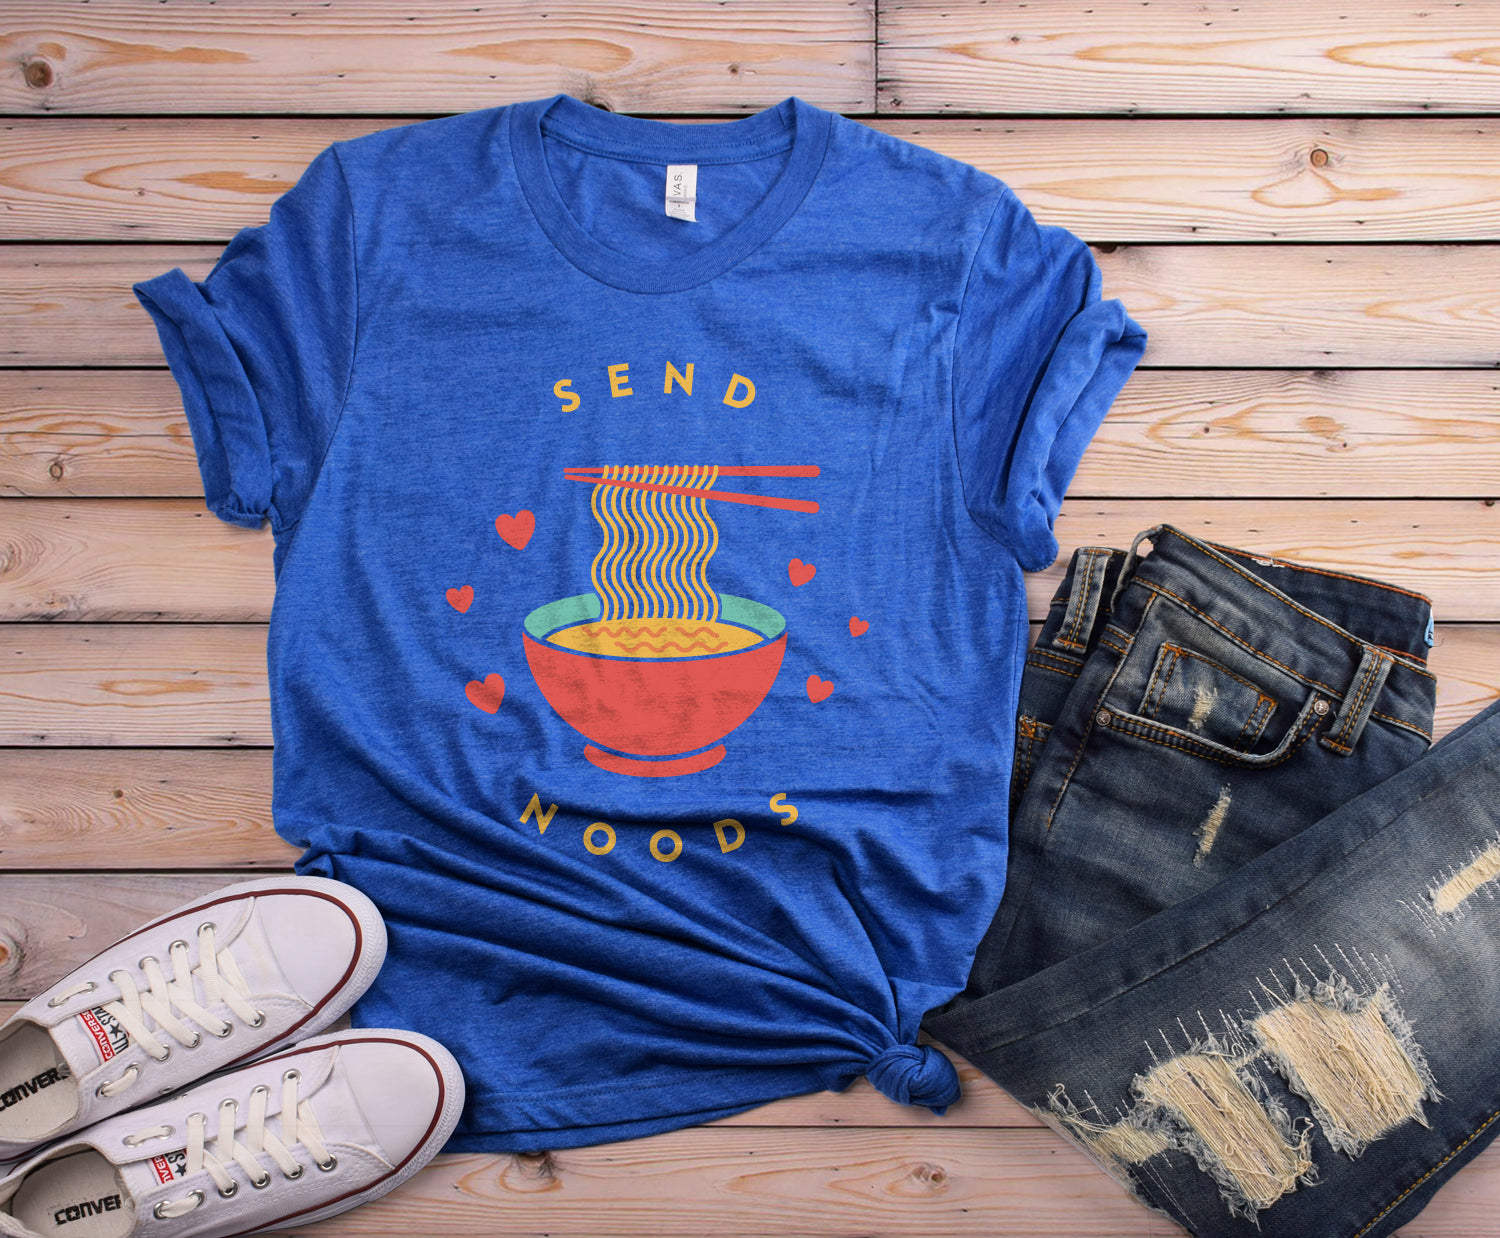 Send Noods Short-Sleeve Unisex T-Shirt